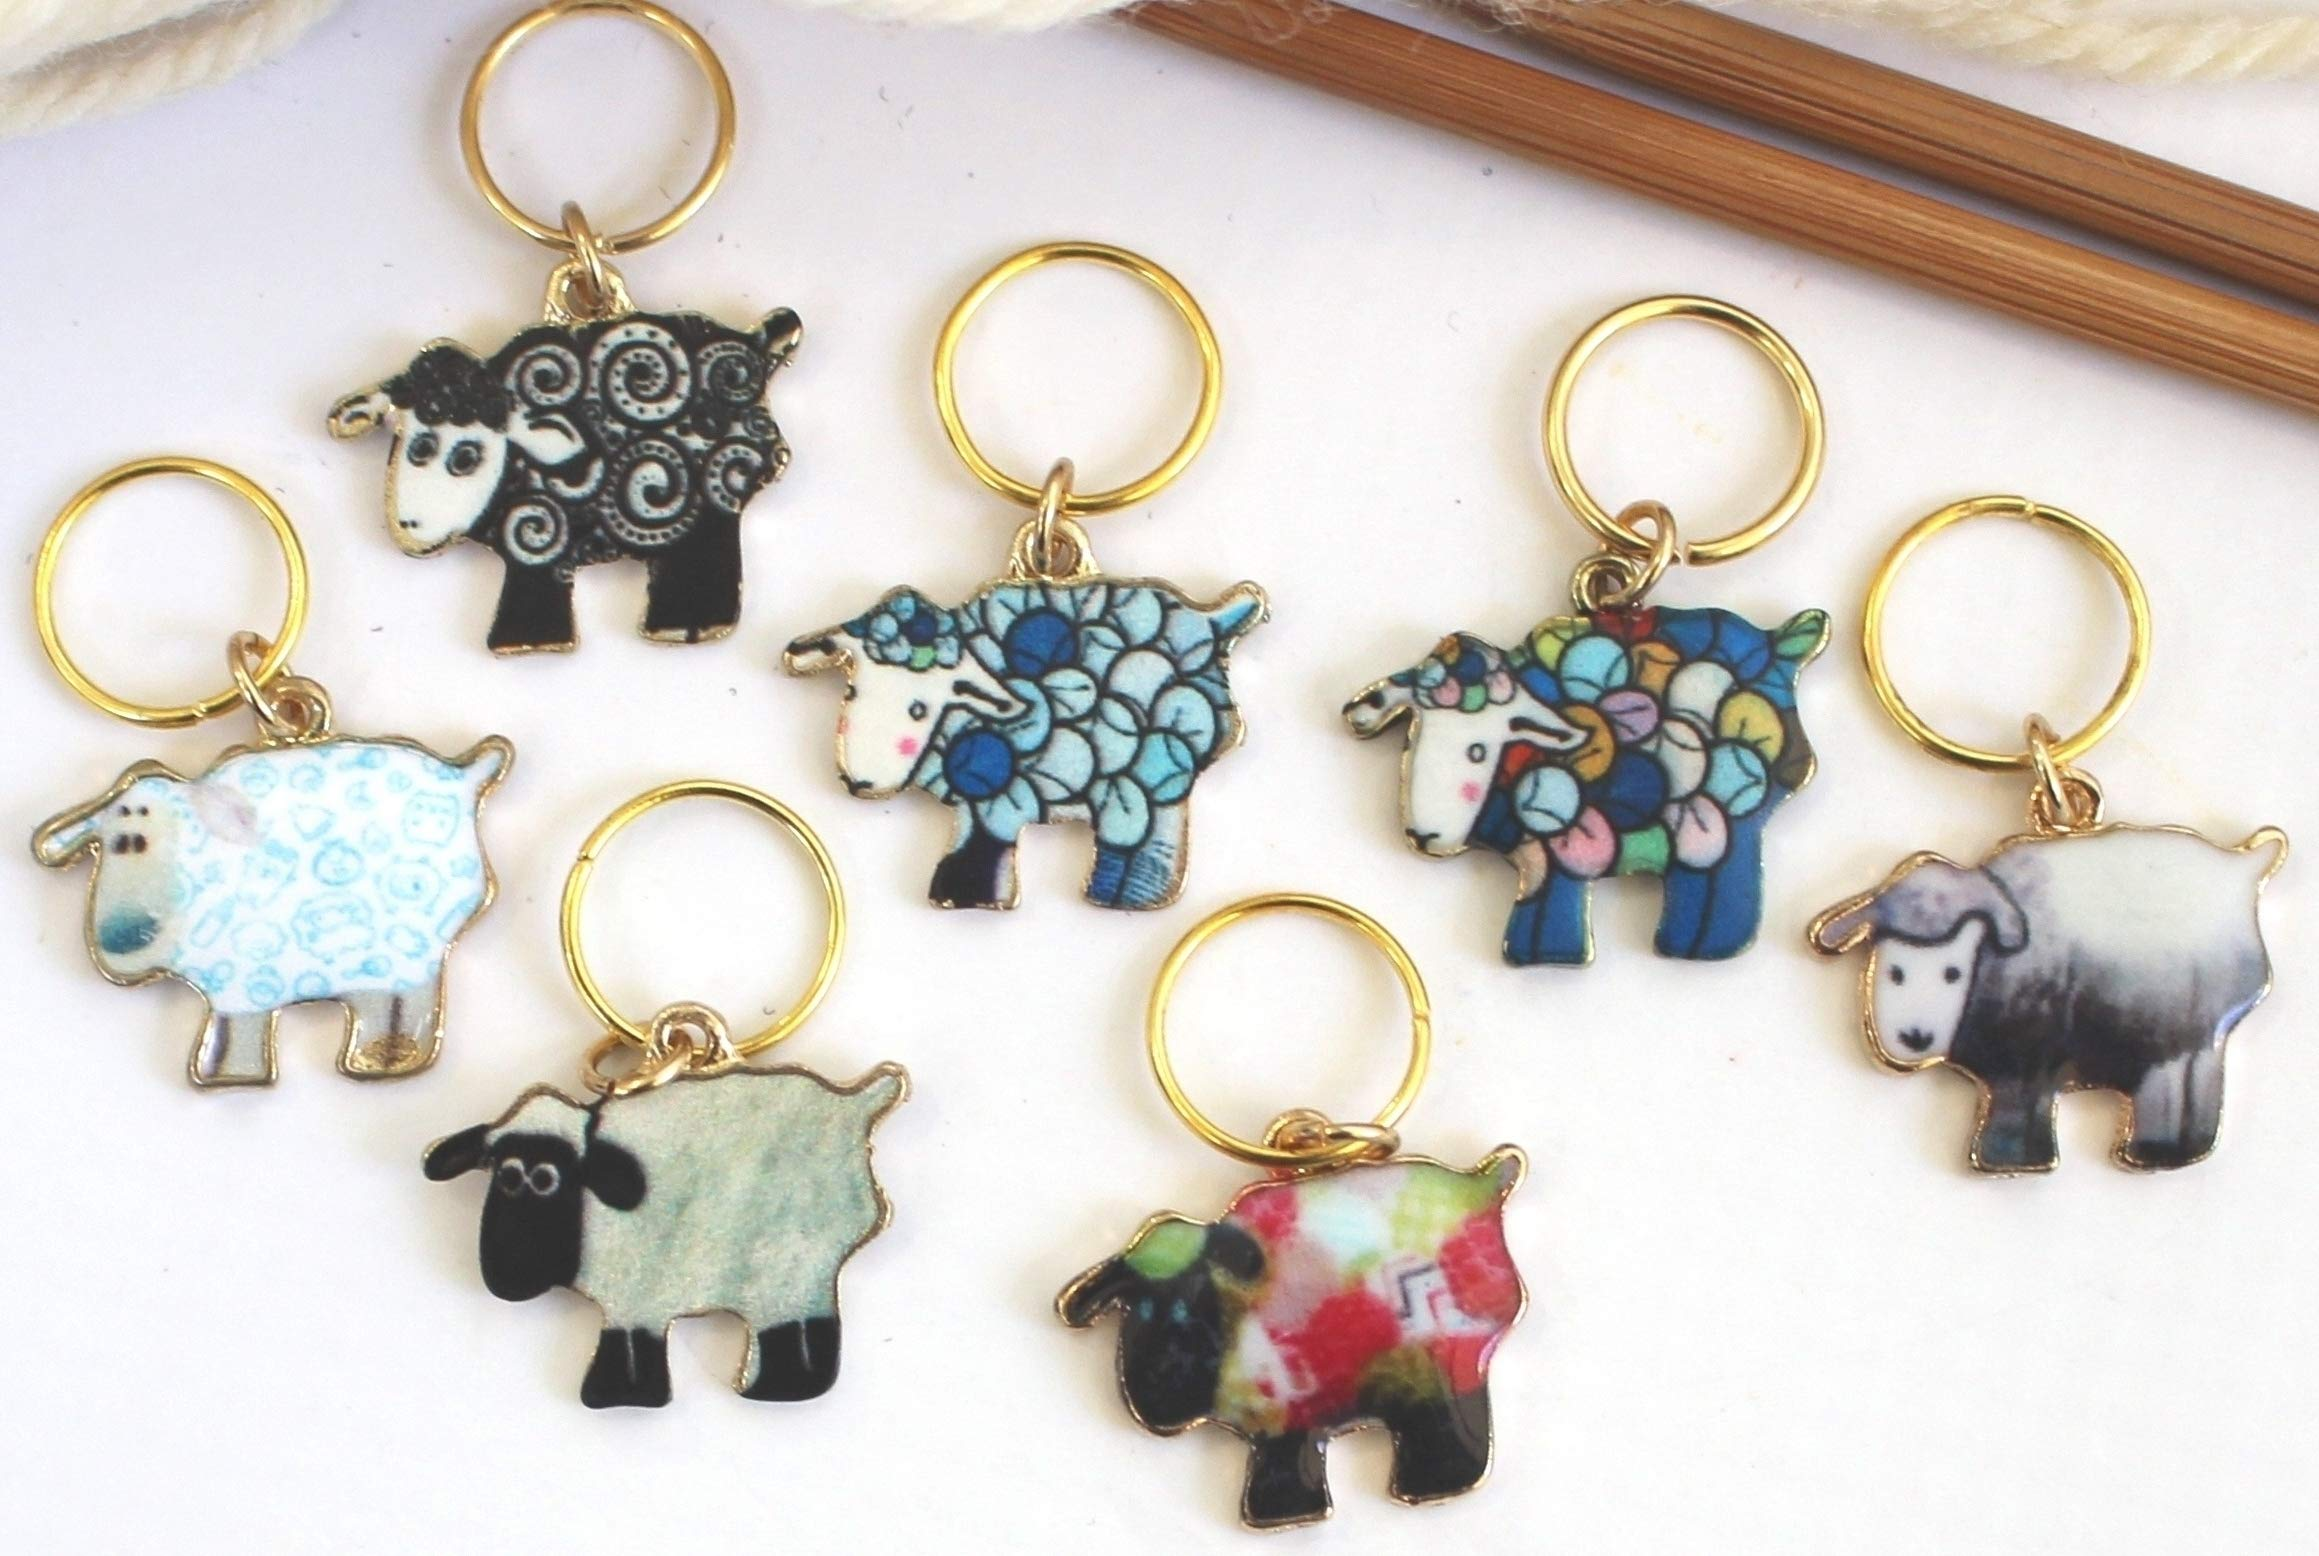 Set of 7 Sheep Stitch Markers for Knitting Knit Pattern Reminder Stitchmarker Pattern Helper Knitter Gift